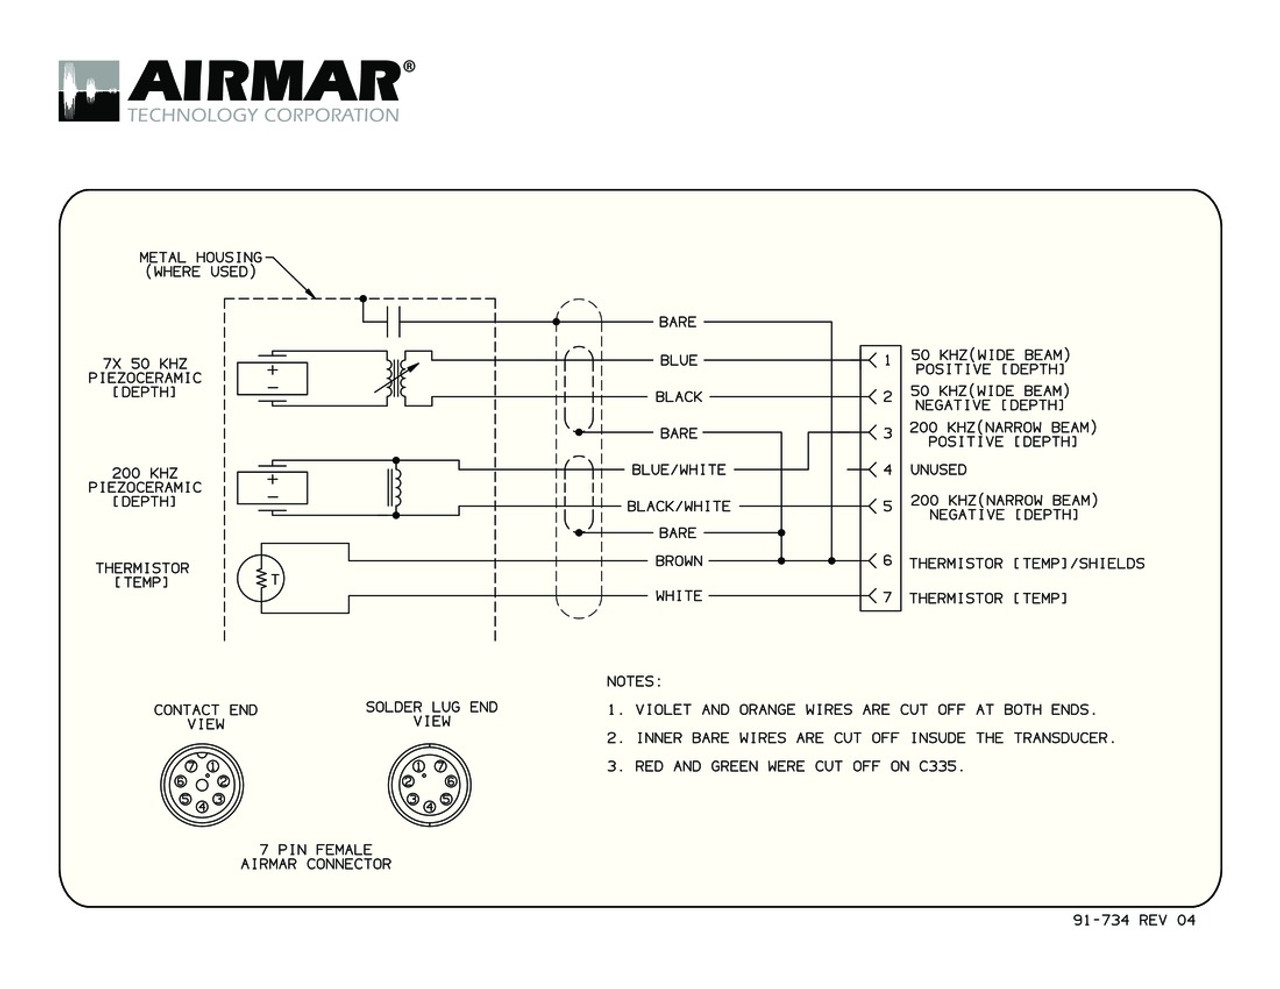 garmin 6 pin transducer wiring diagram three switches one light simrad best site harness